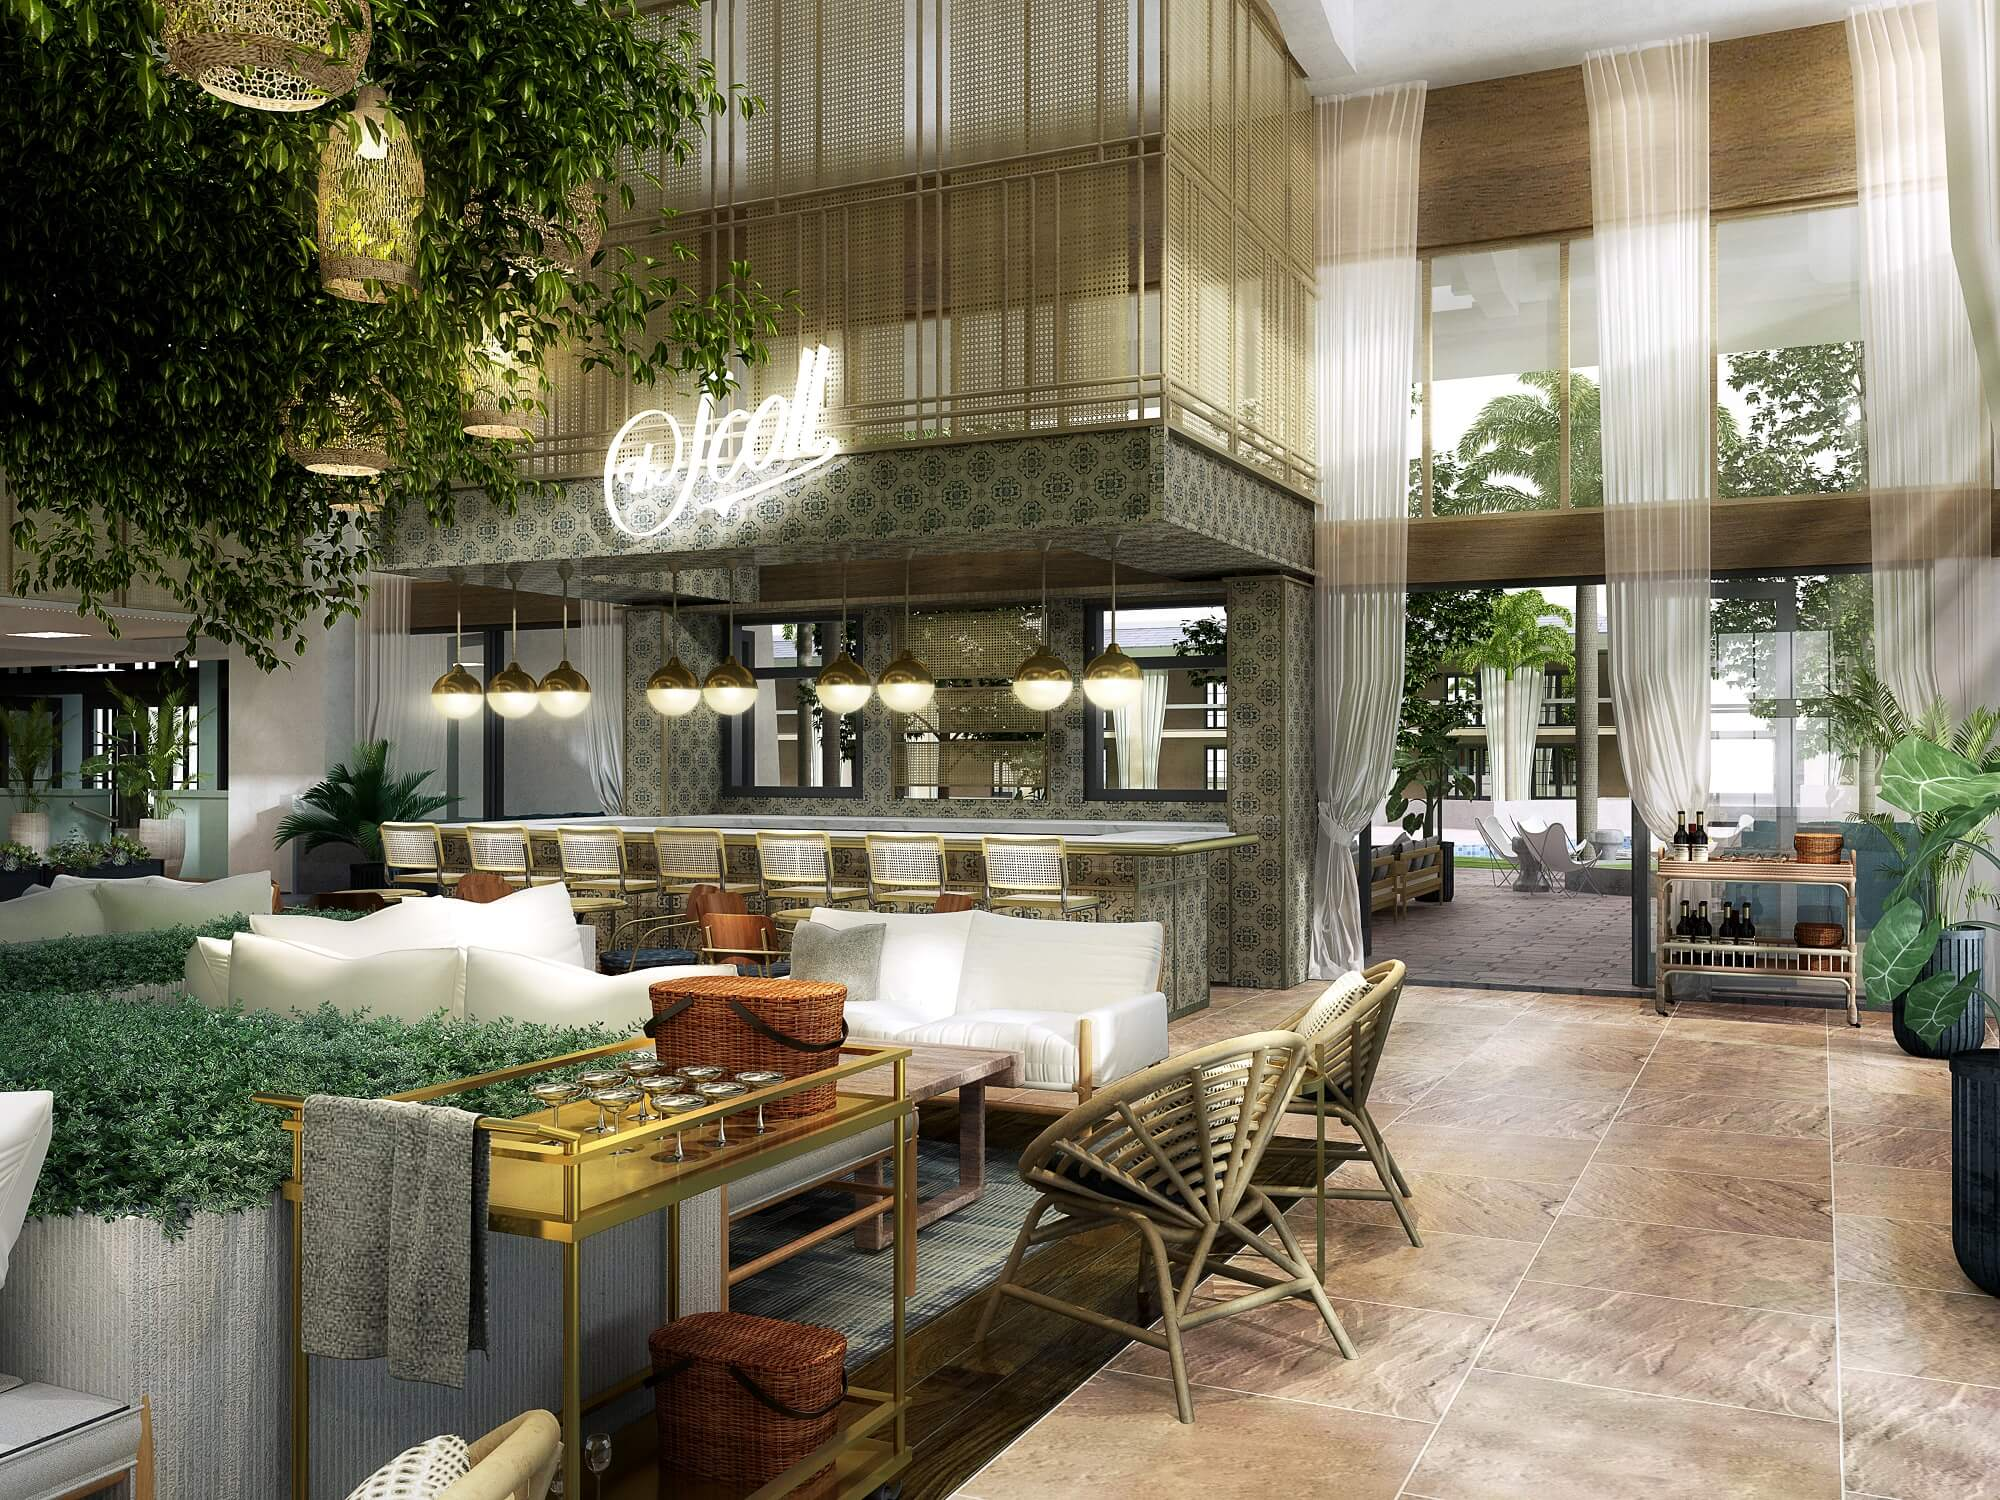 The lobby will evoke a traditional front porch in Havana, with blue-glazed olive jars and indoor landscaping.